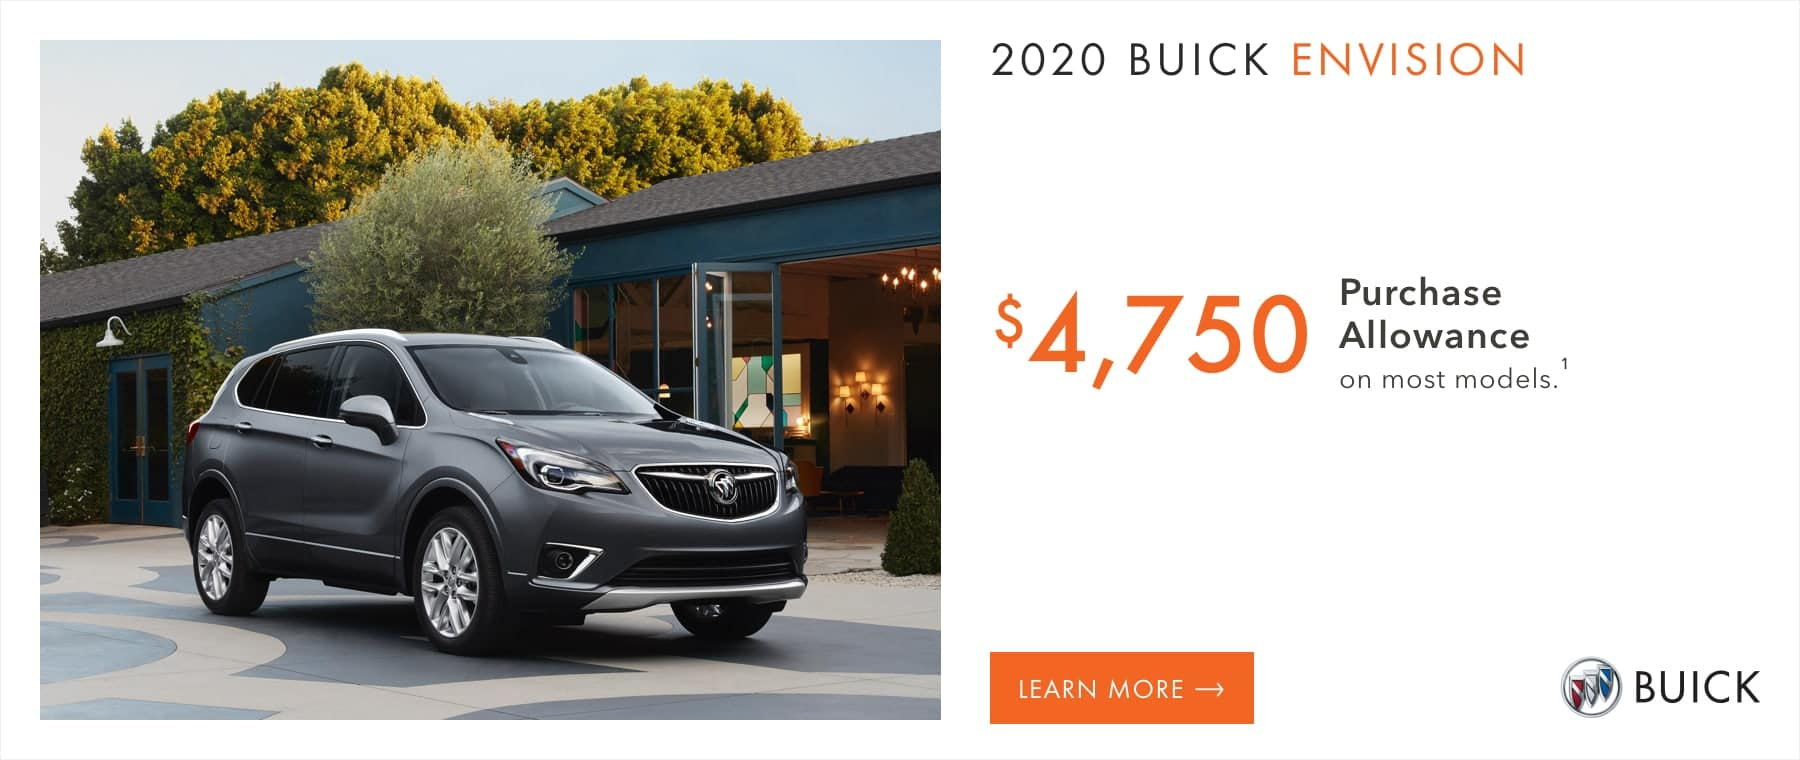 Most 2020 Buick Envision Models - $4,750 Purchase Allowance